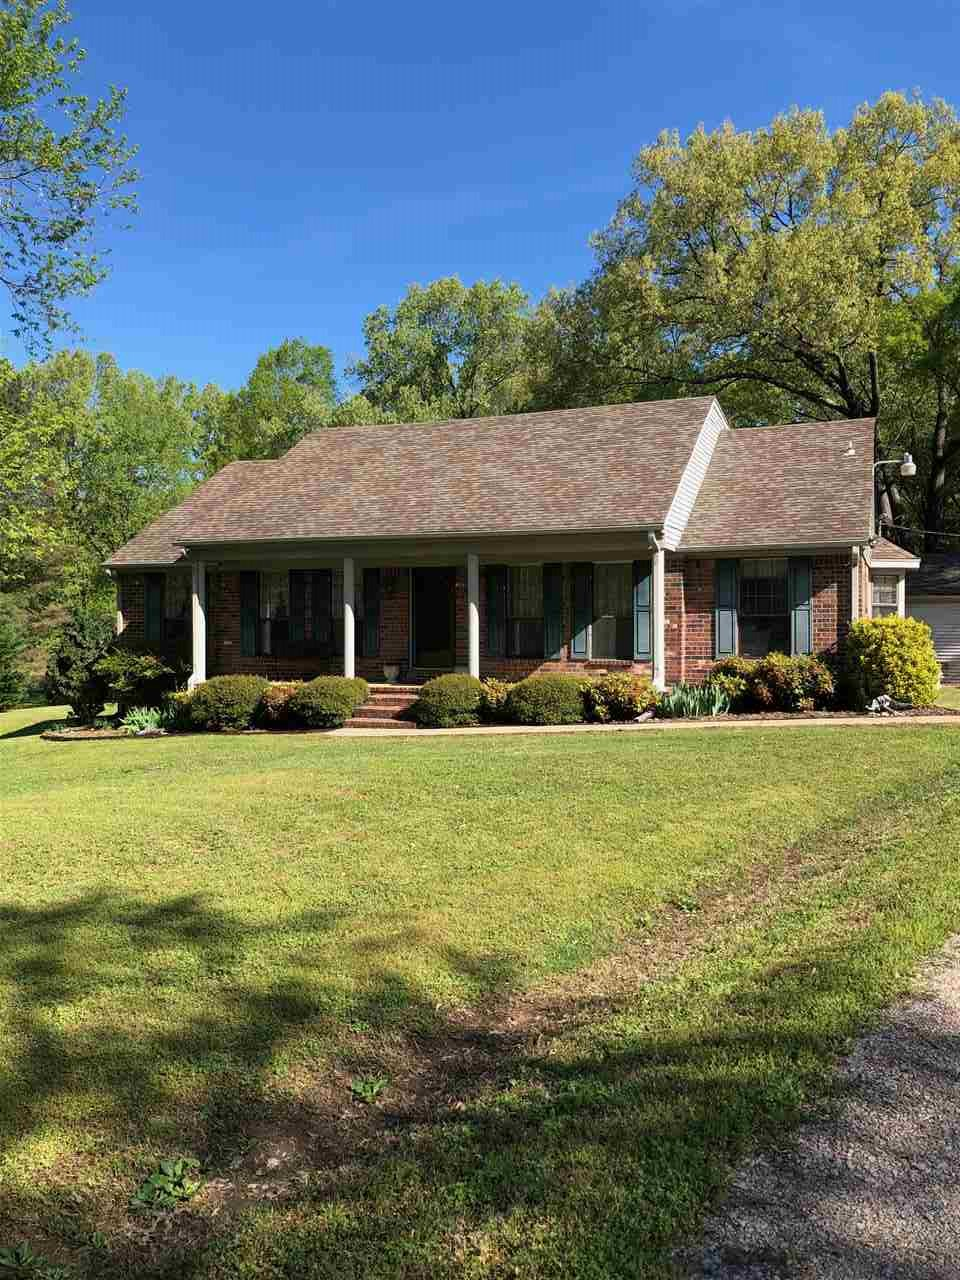 Property for sale at 120 Big Bell Loop, Eads,  Tennessee 38028